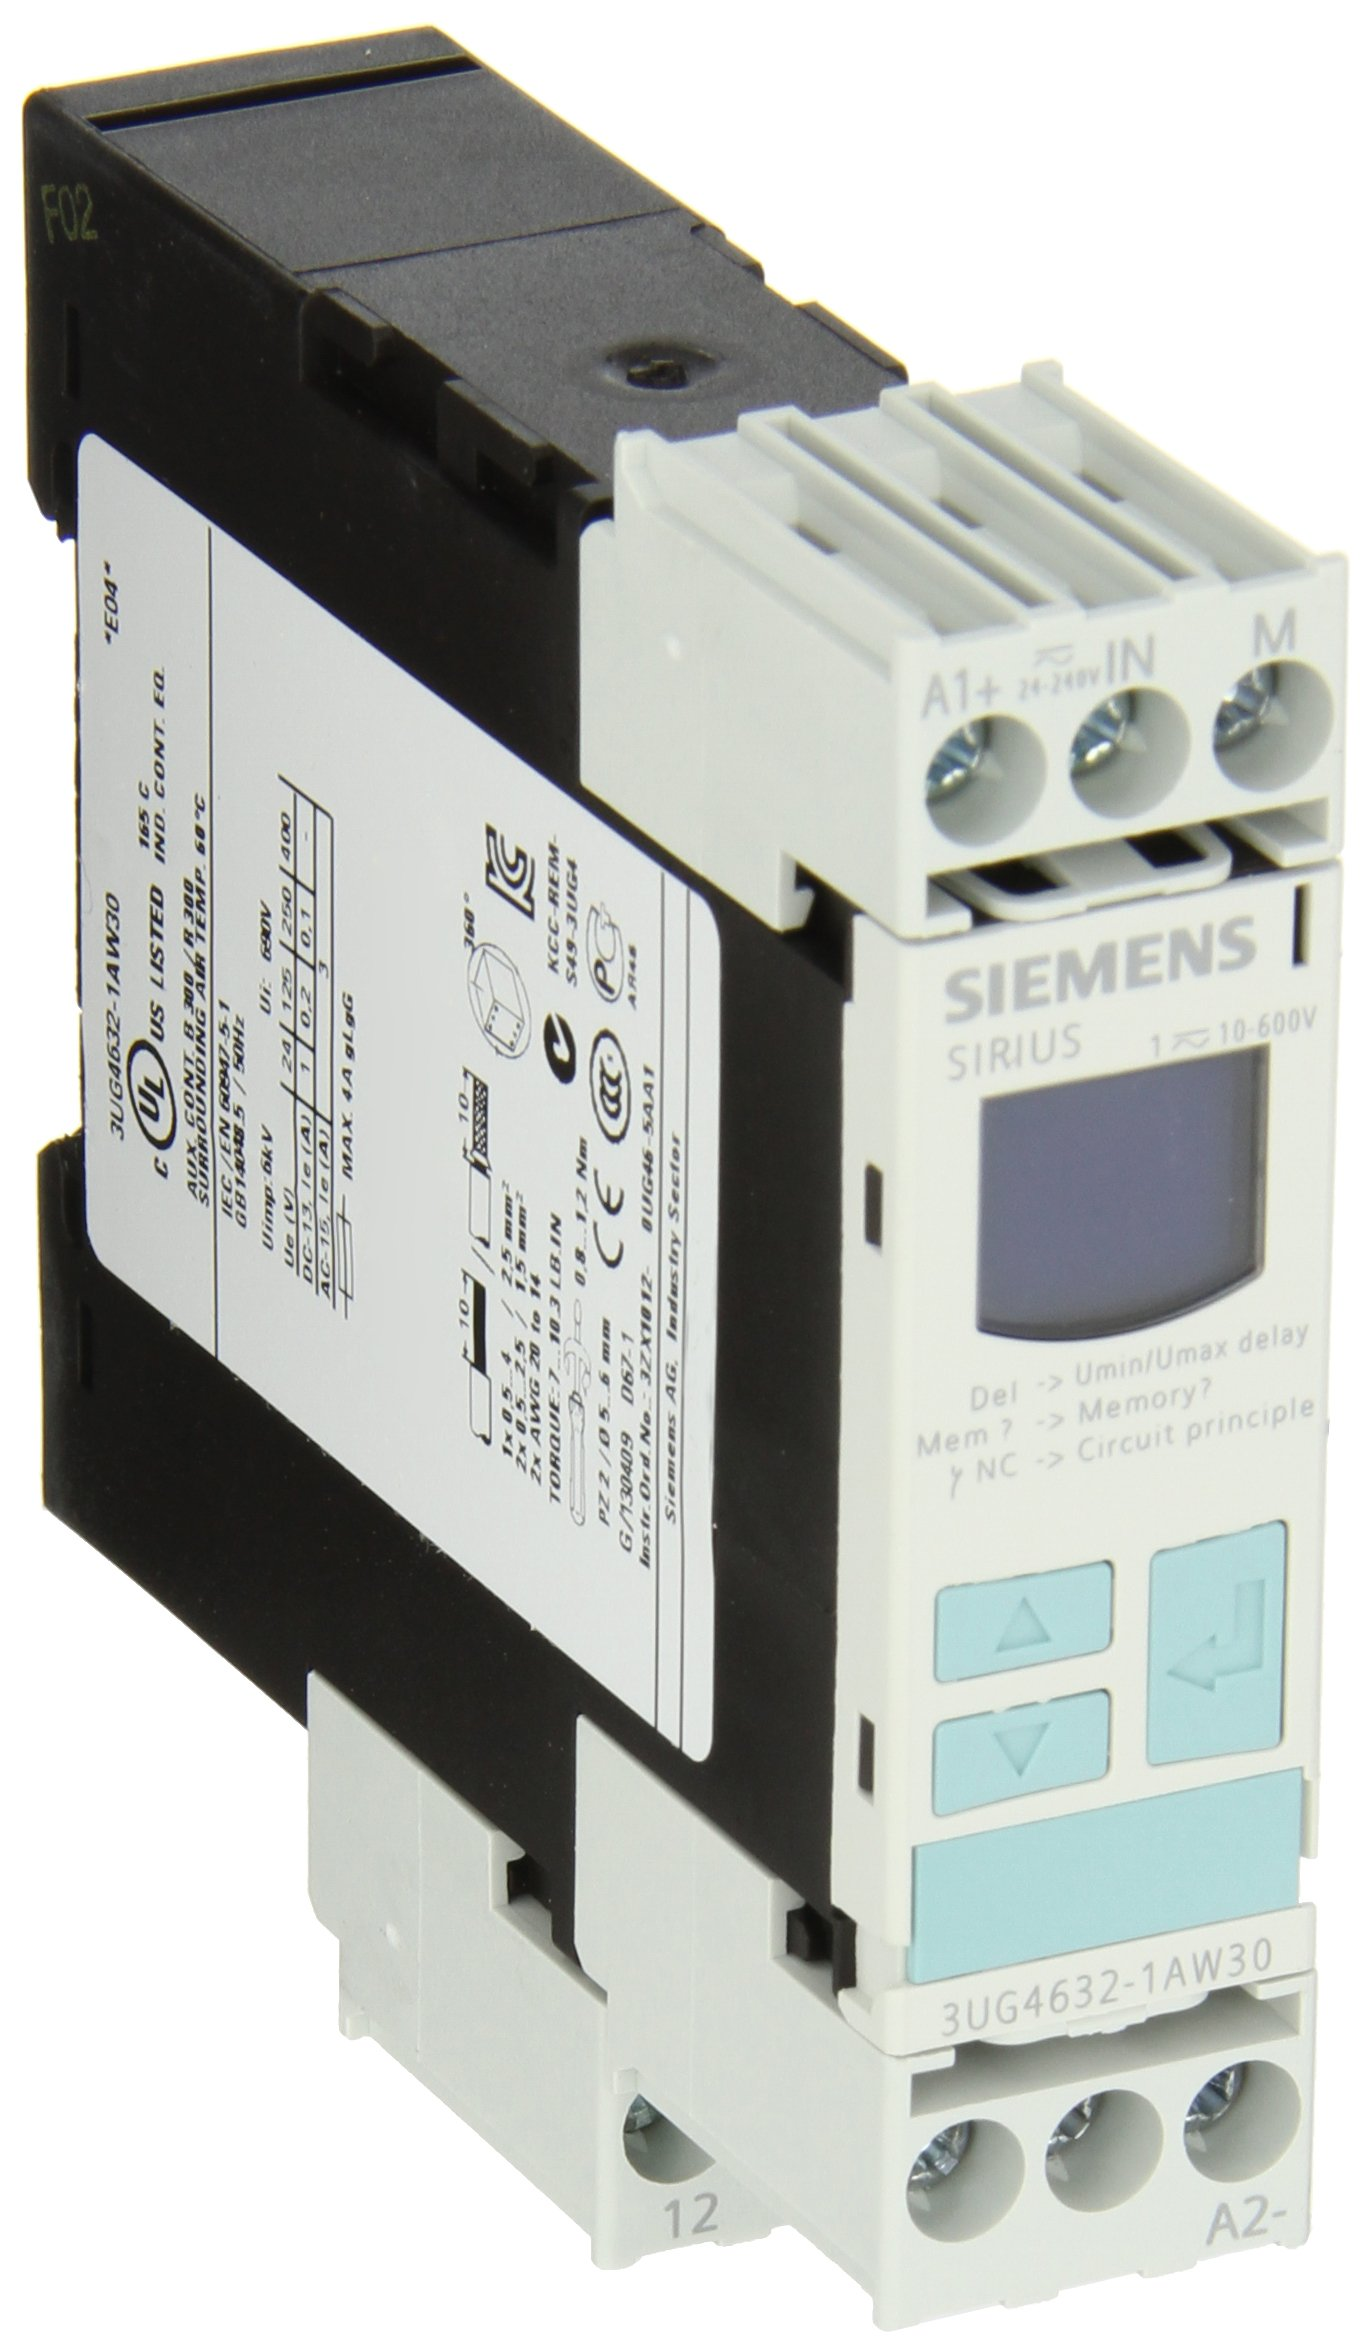 Siemens 3UG4632-1AW30 Monitoring Relay, Single Phase Voltage Monitoring, Screw Terminal, 1 CO Contacts, 10-600VAC/DC Measuring Range, 0.1-300V Hysteresis, 0-20s Delay Time, 24VAC/DC Auxiliary Voltage